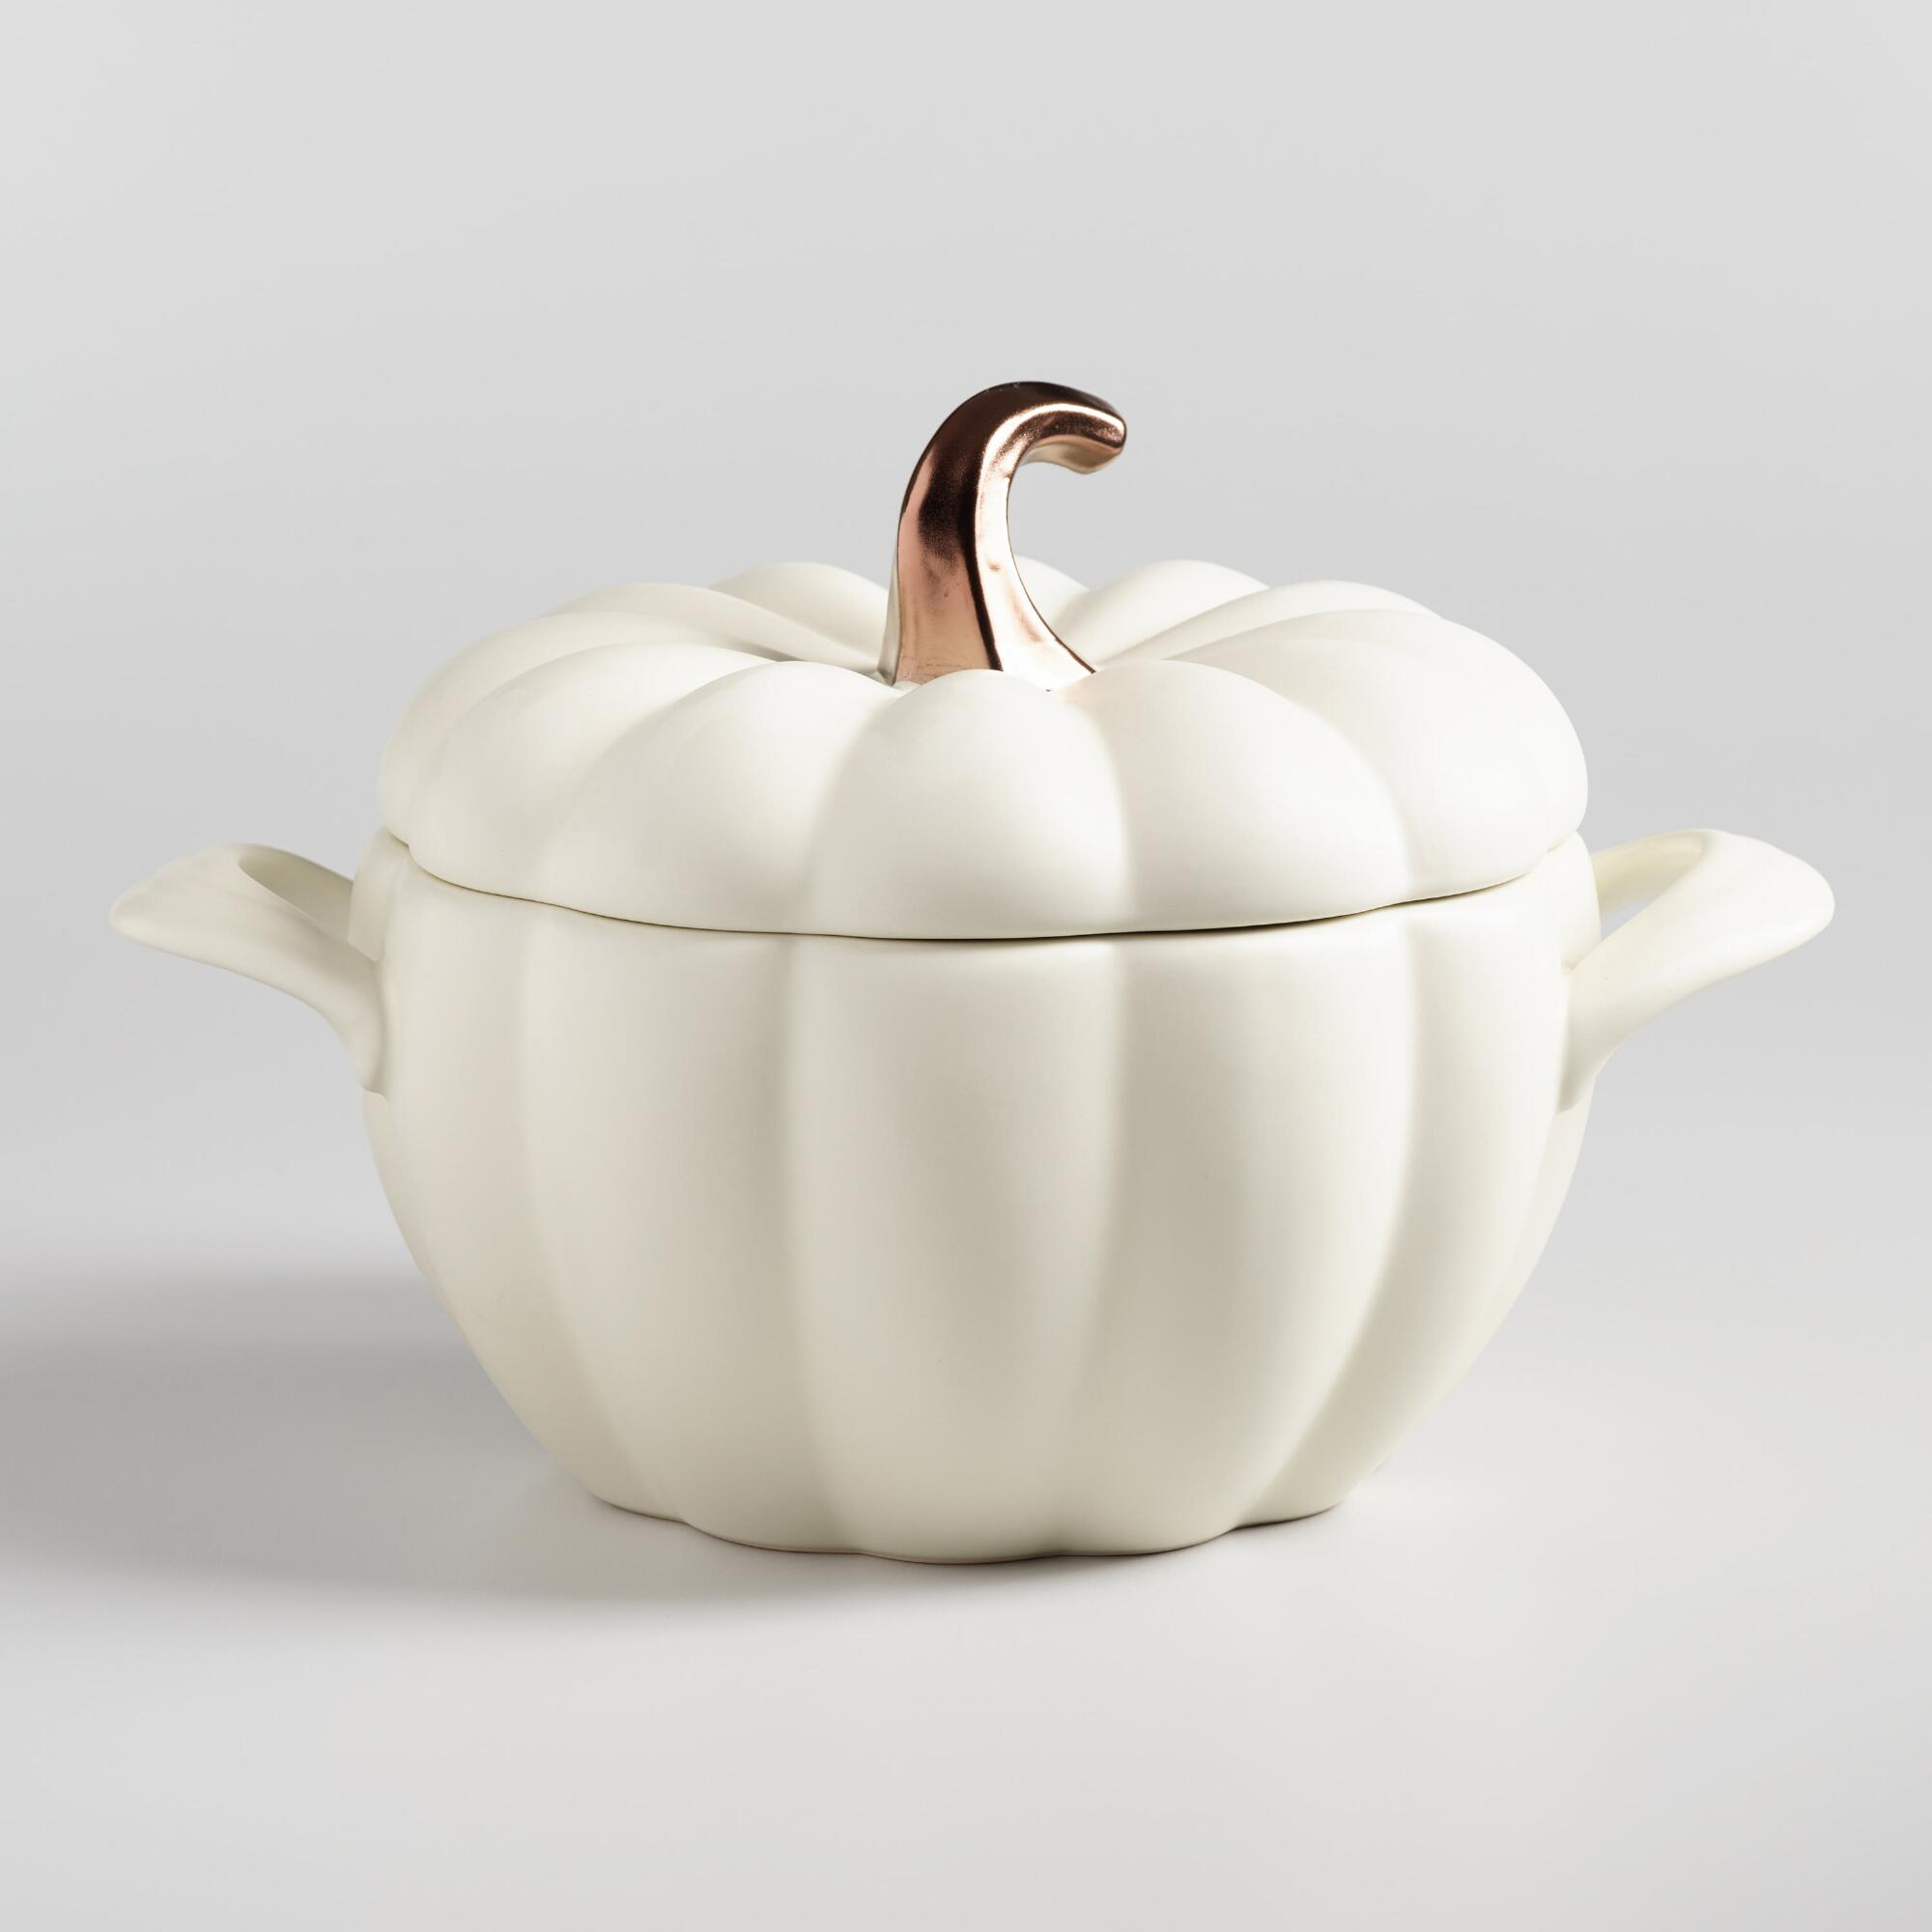 Matte White Ceramic Pumpkin Casserole Baker by World Market